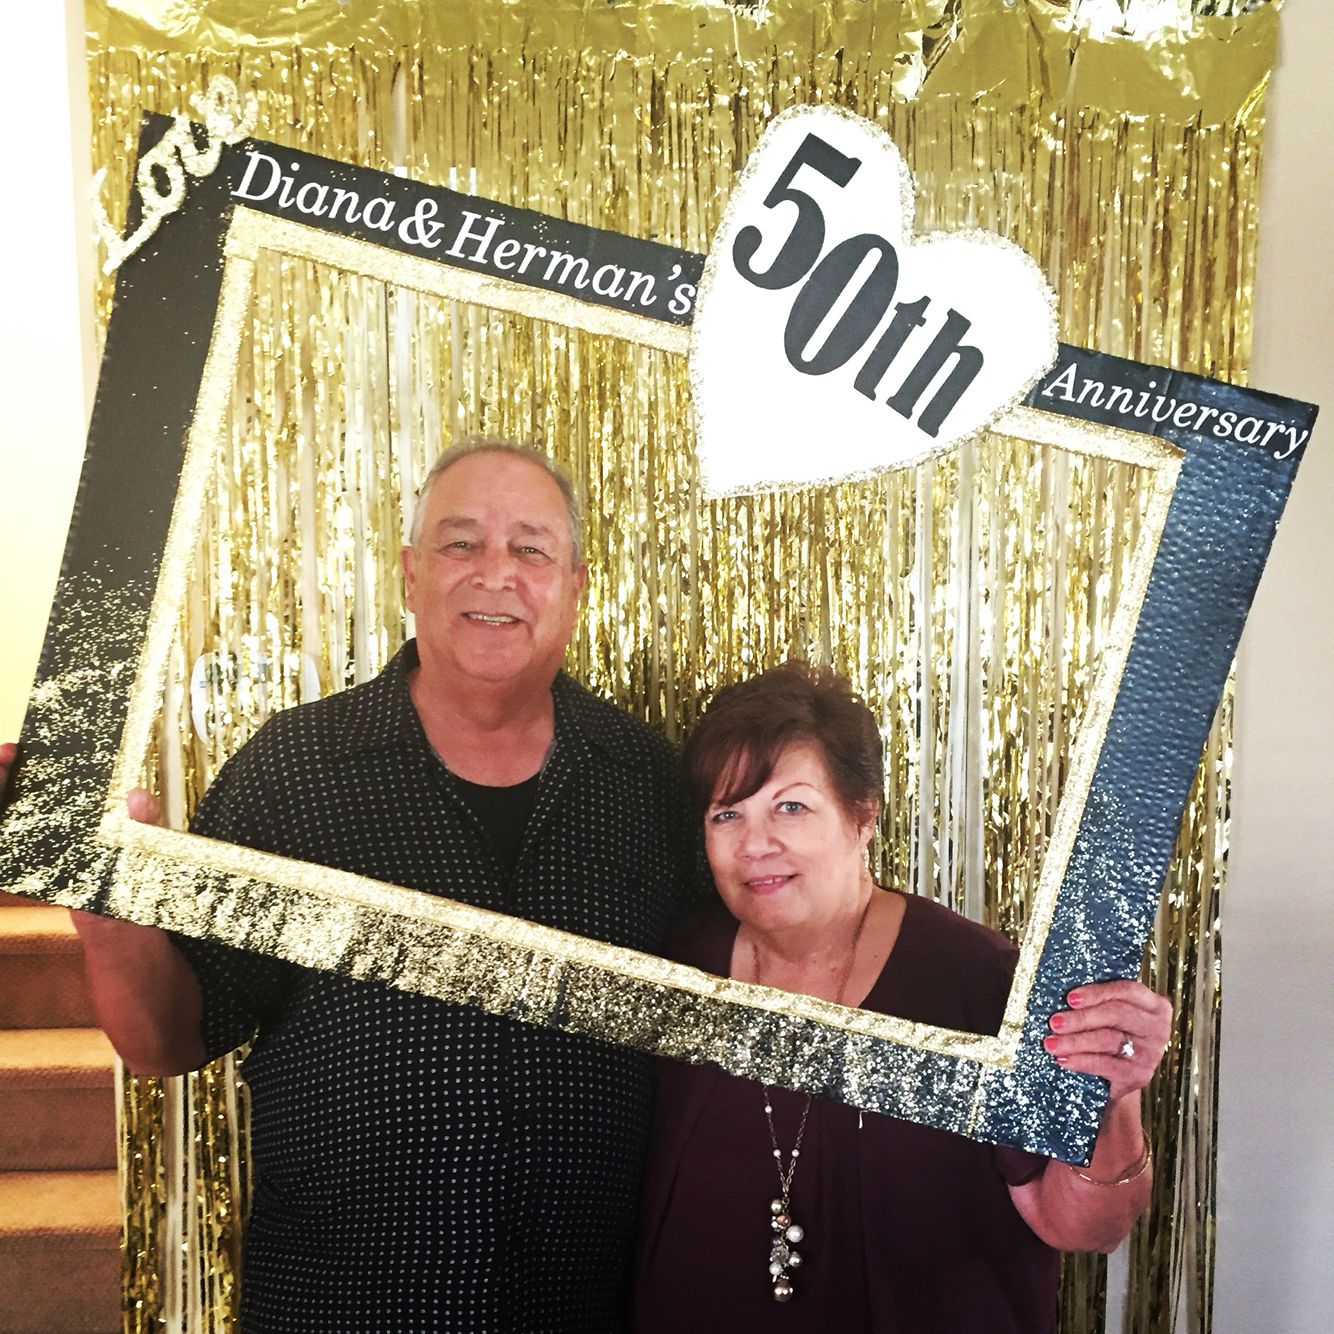 50th Anniversary Photo Booth Fun Diy Frame Diy Fetes